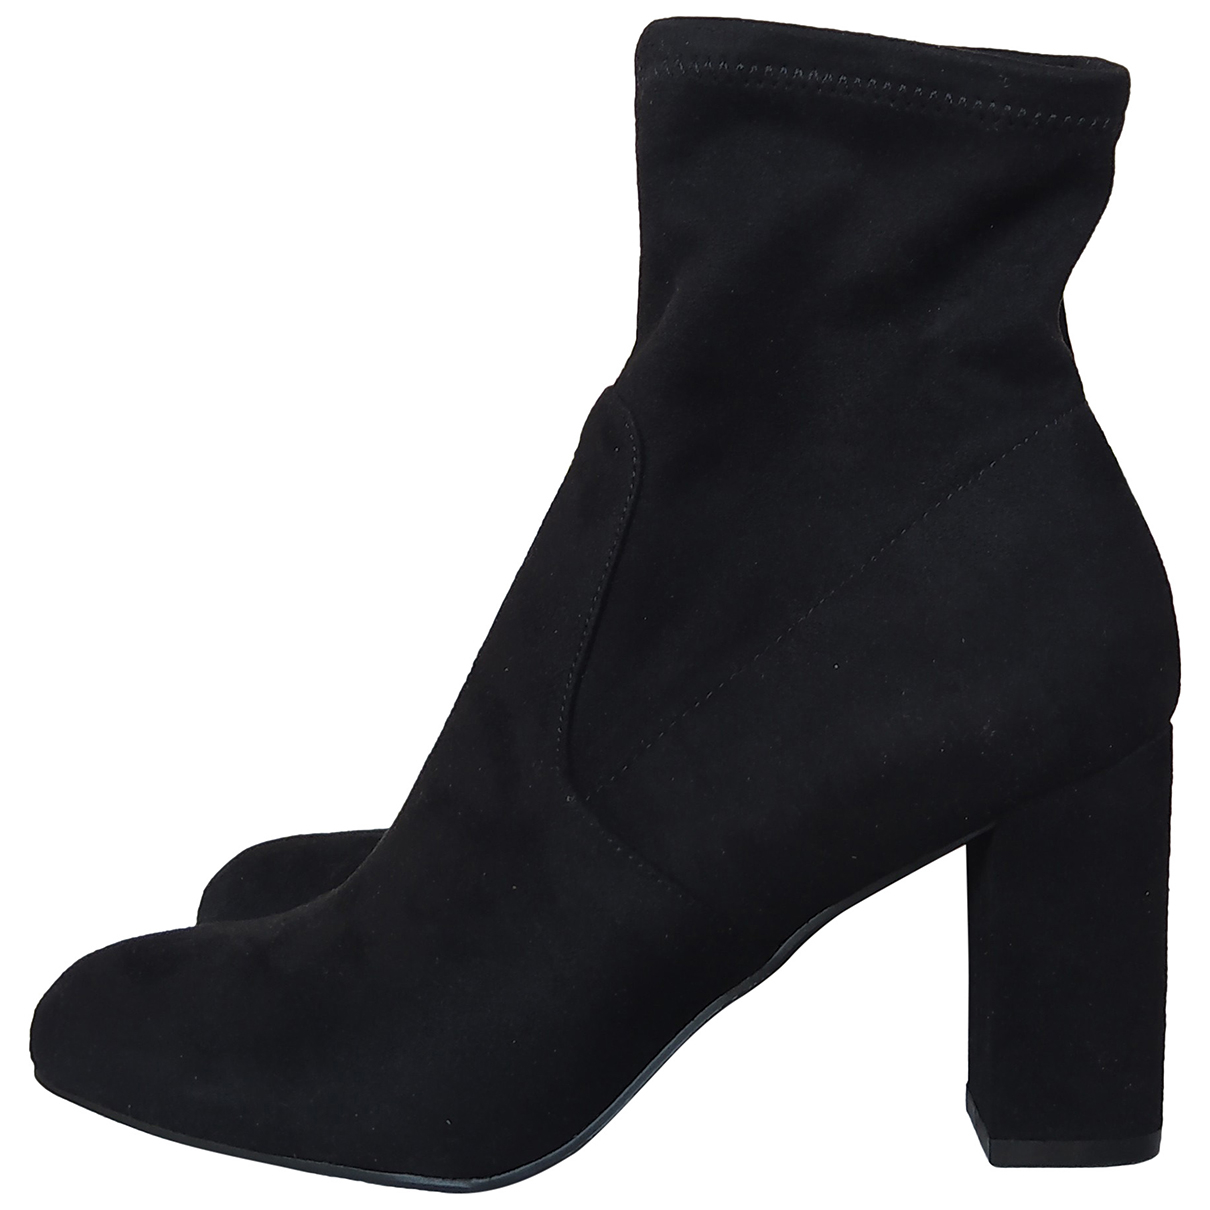 Steve Madden N Black Velvet Ankle boots for Women 37 EU